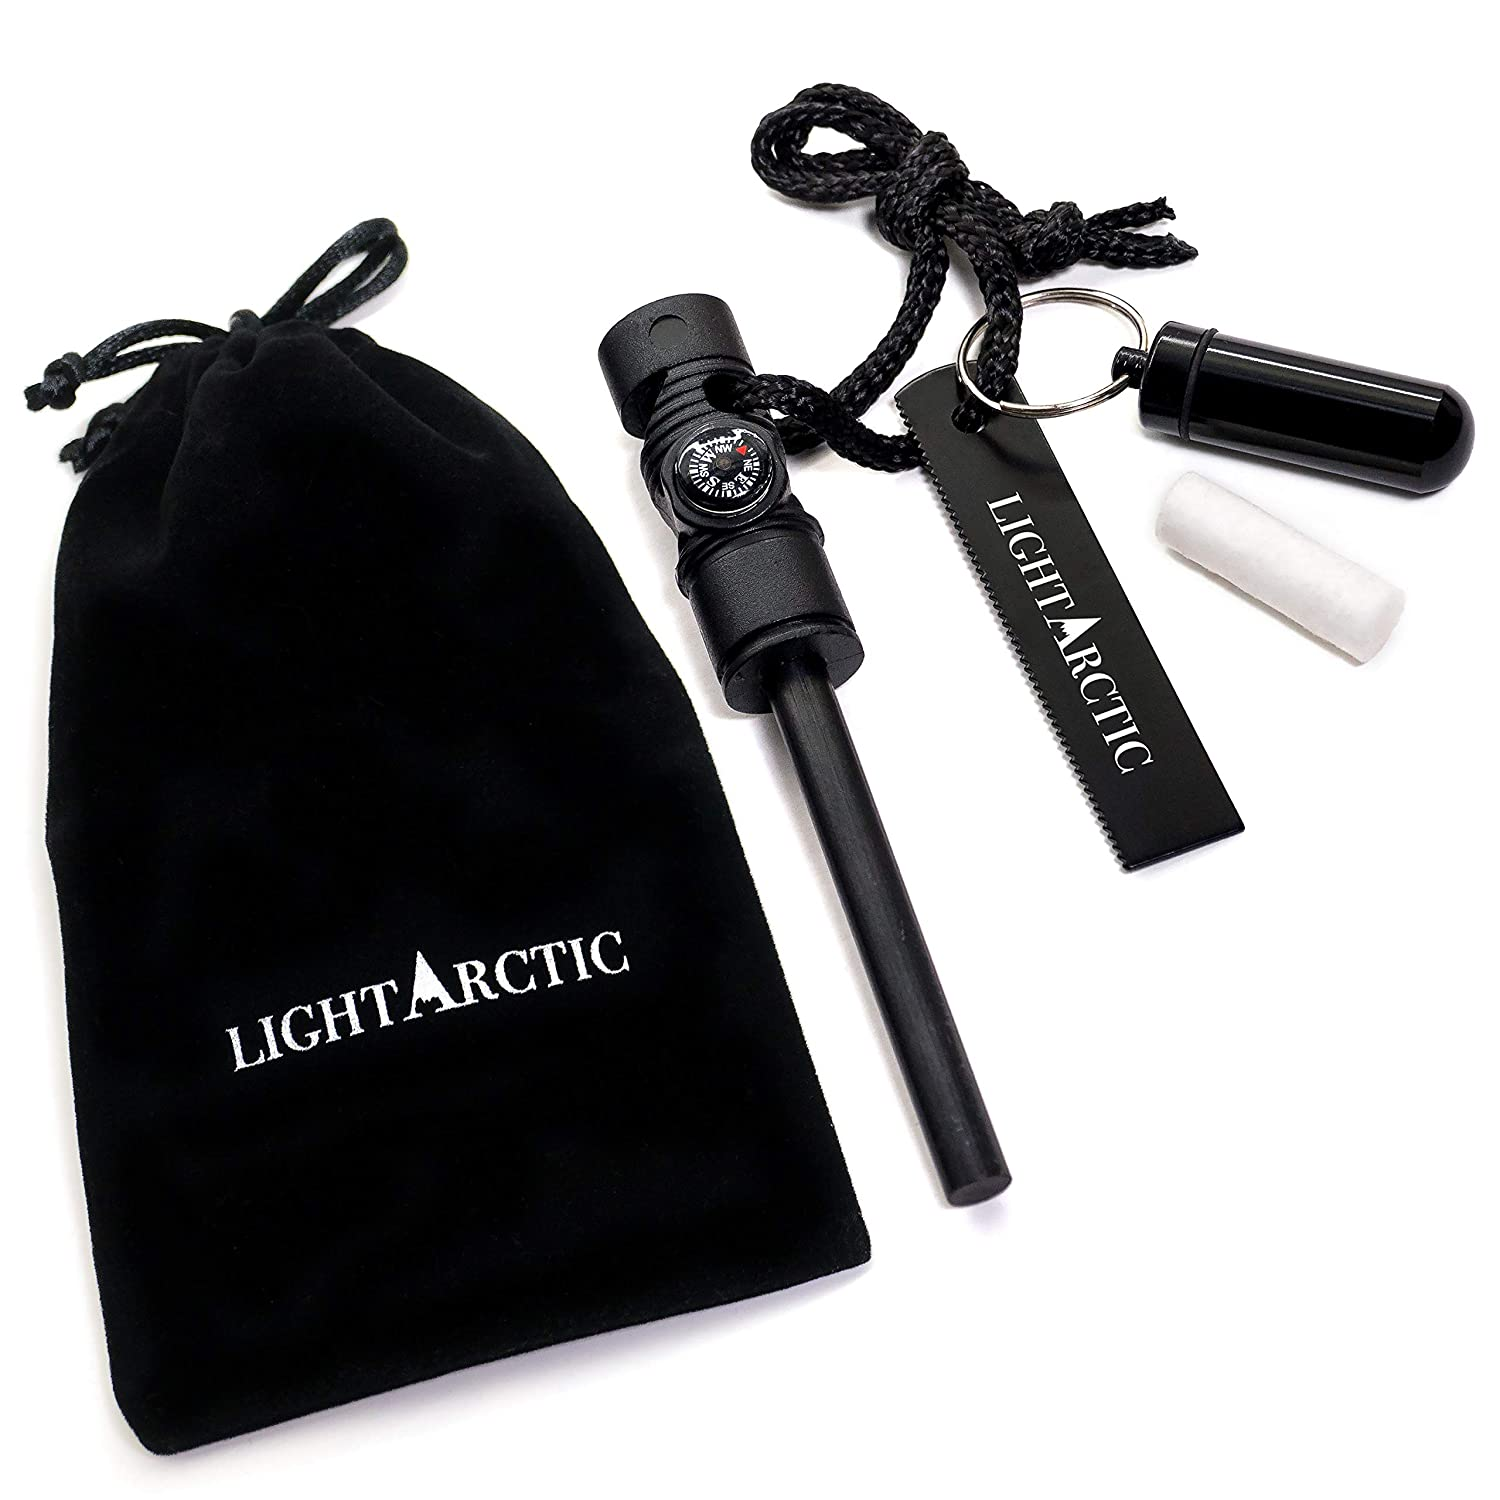 2. LightArctic Magnesium Fire Starter Survival Multi-Tool with Tinder